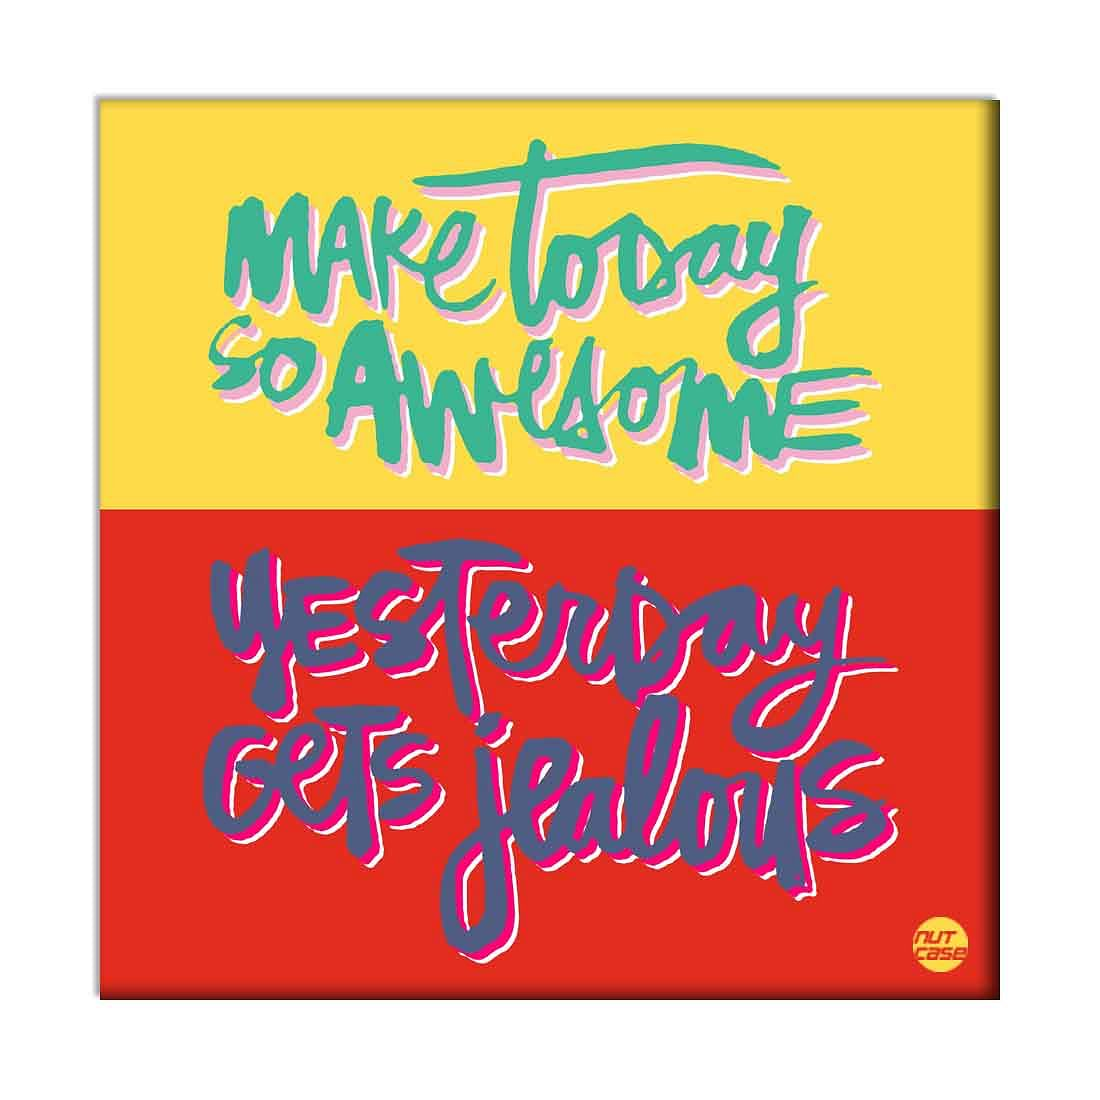 Wall Art Decor Panel For Home - Make Today Awesome